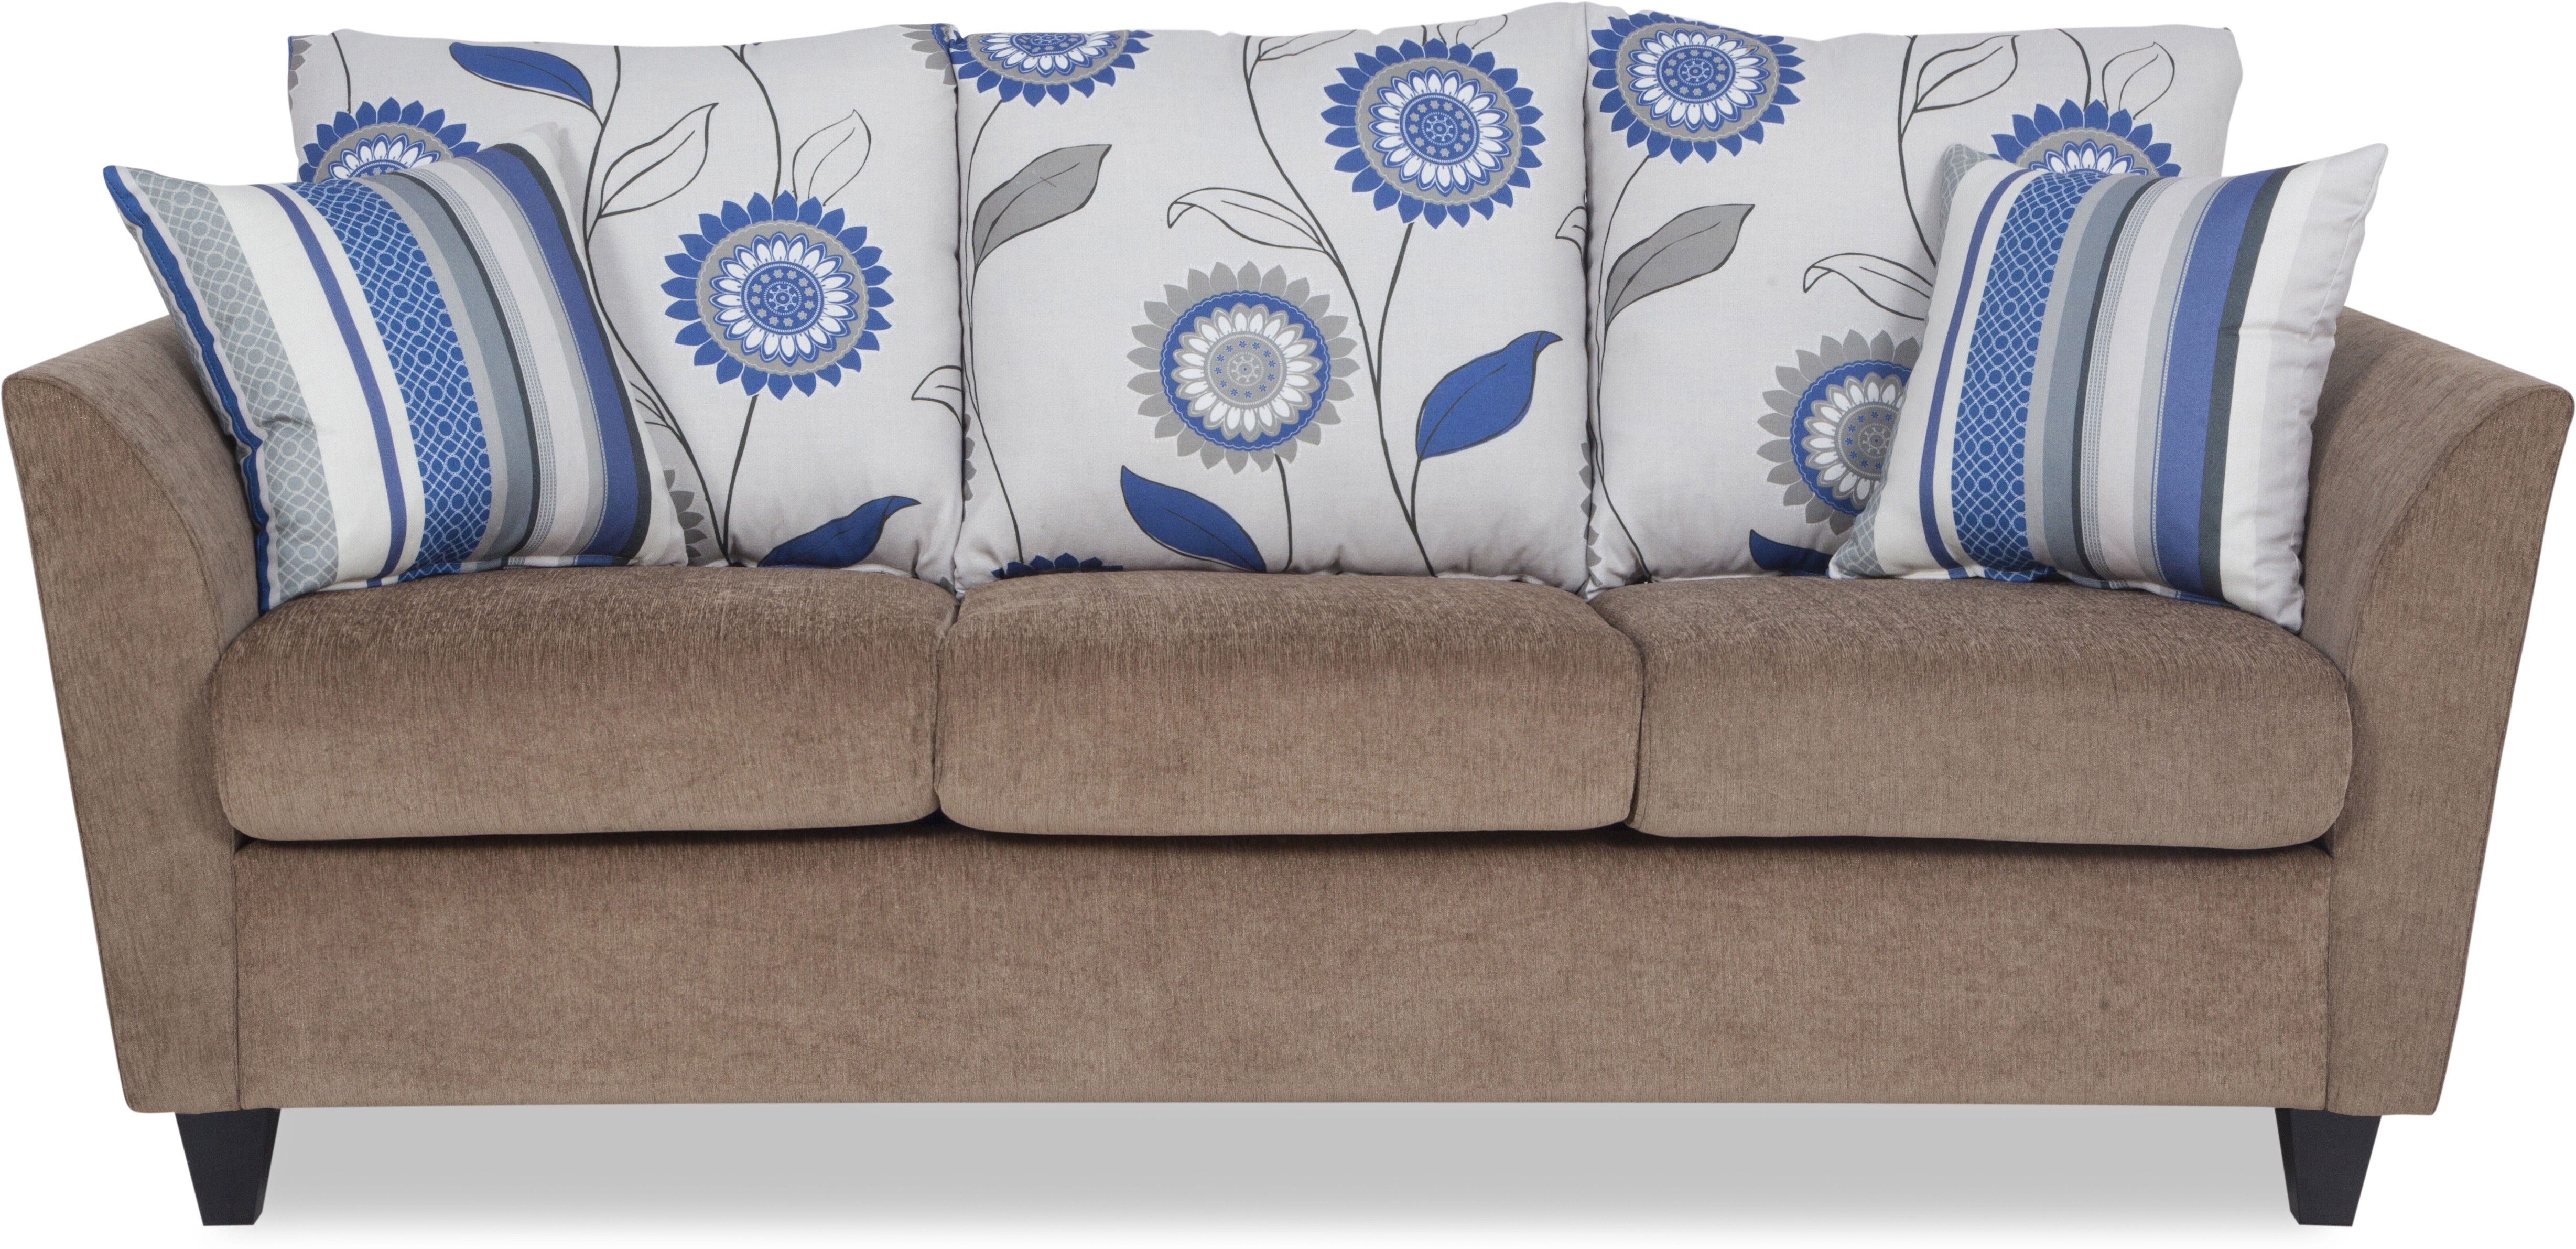 Urban Living Solid Wood 3 Seater Sofa